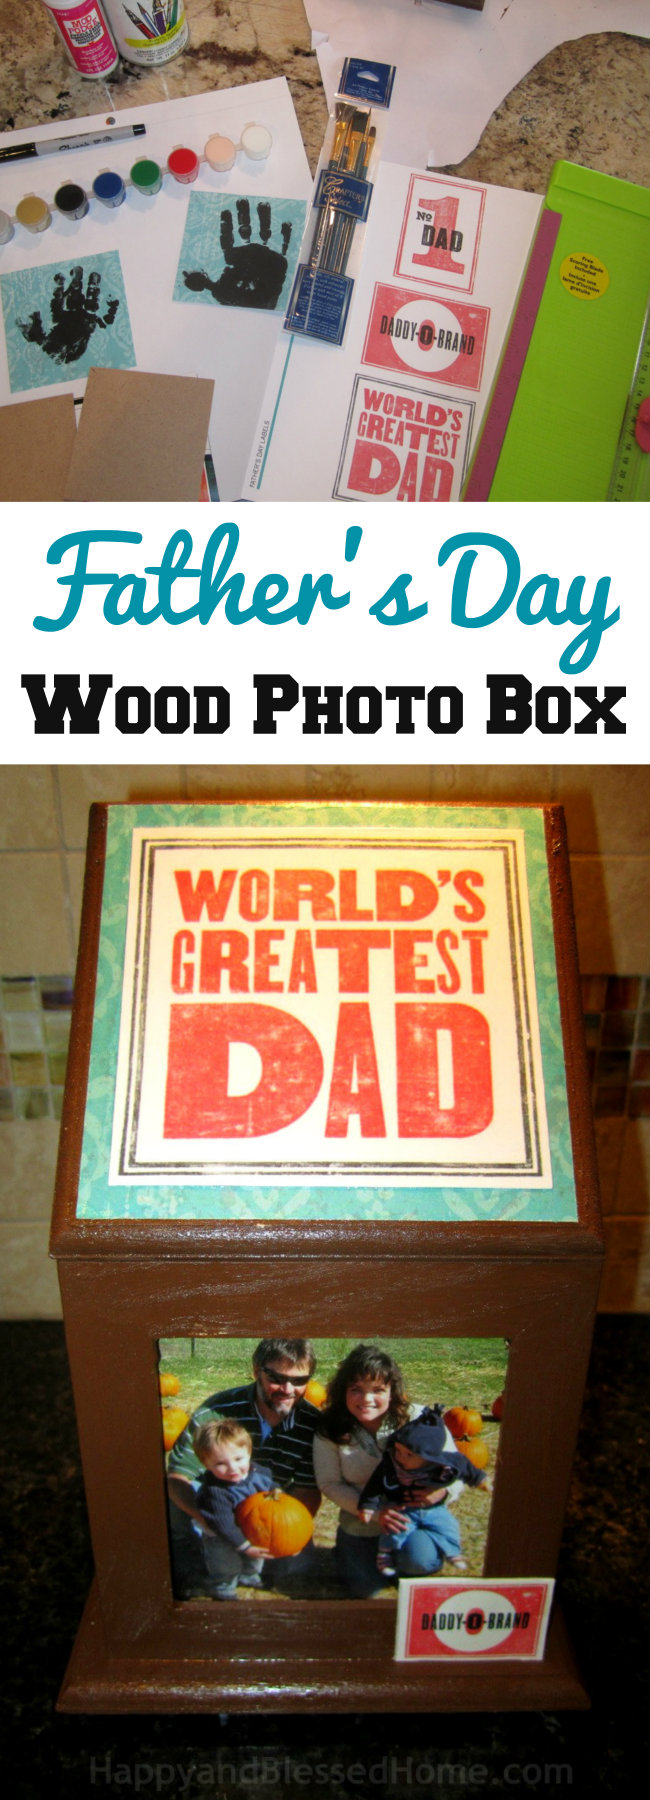 Fun and Easy handmade Father's Day gift idea - Wood Photo Box - an easy craft to personalize for Father's Day tutorial by HappyandBlessedHome.com